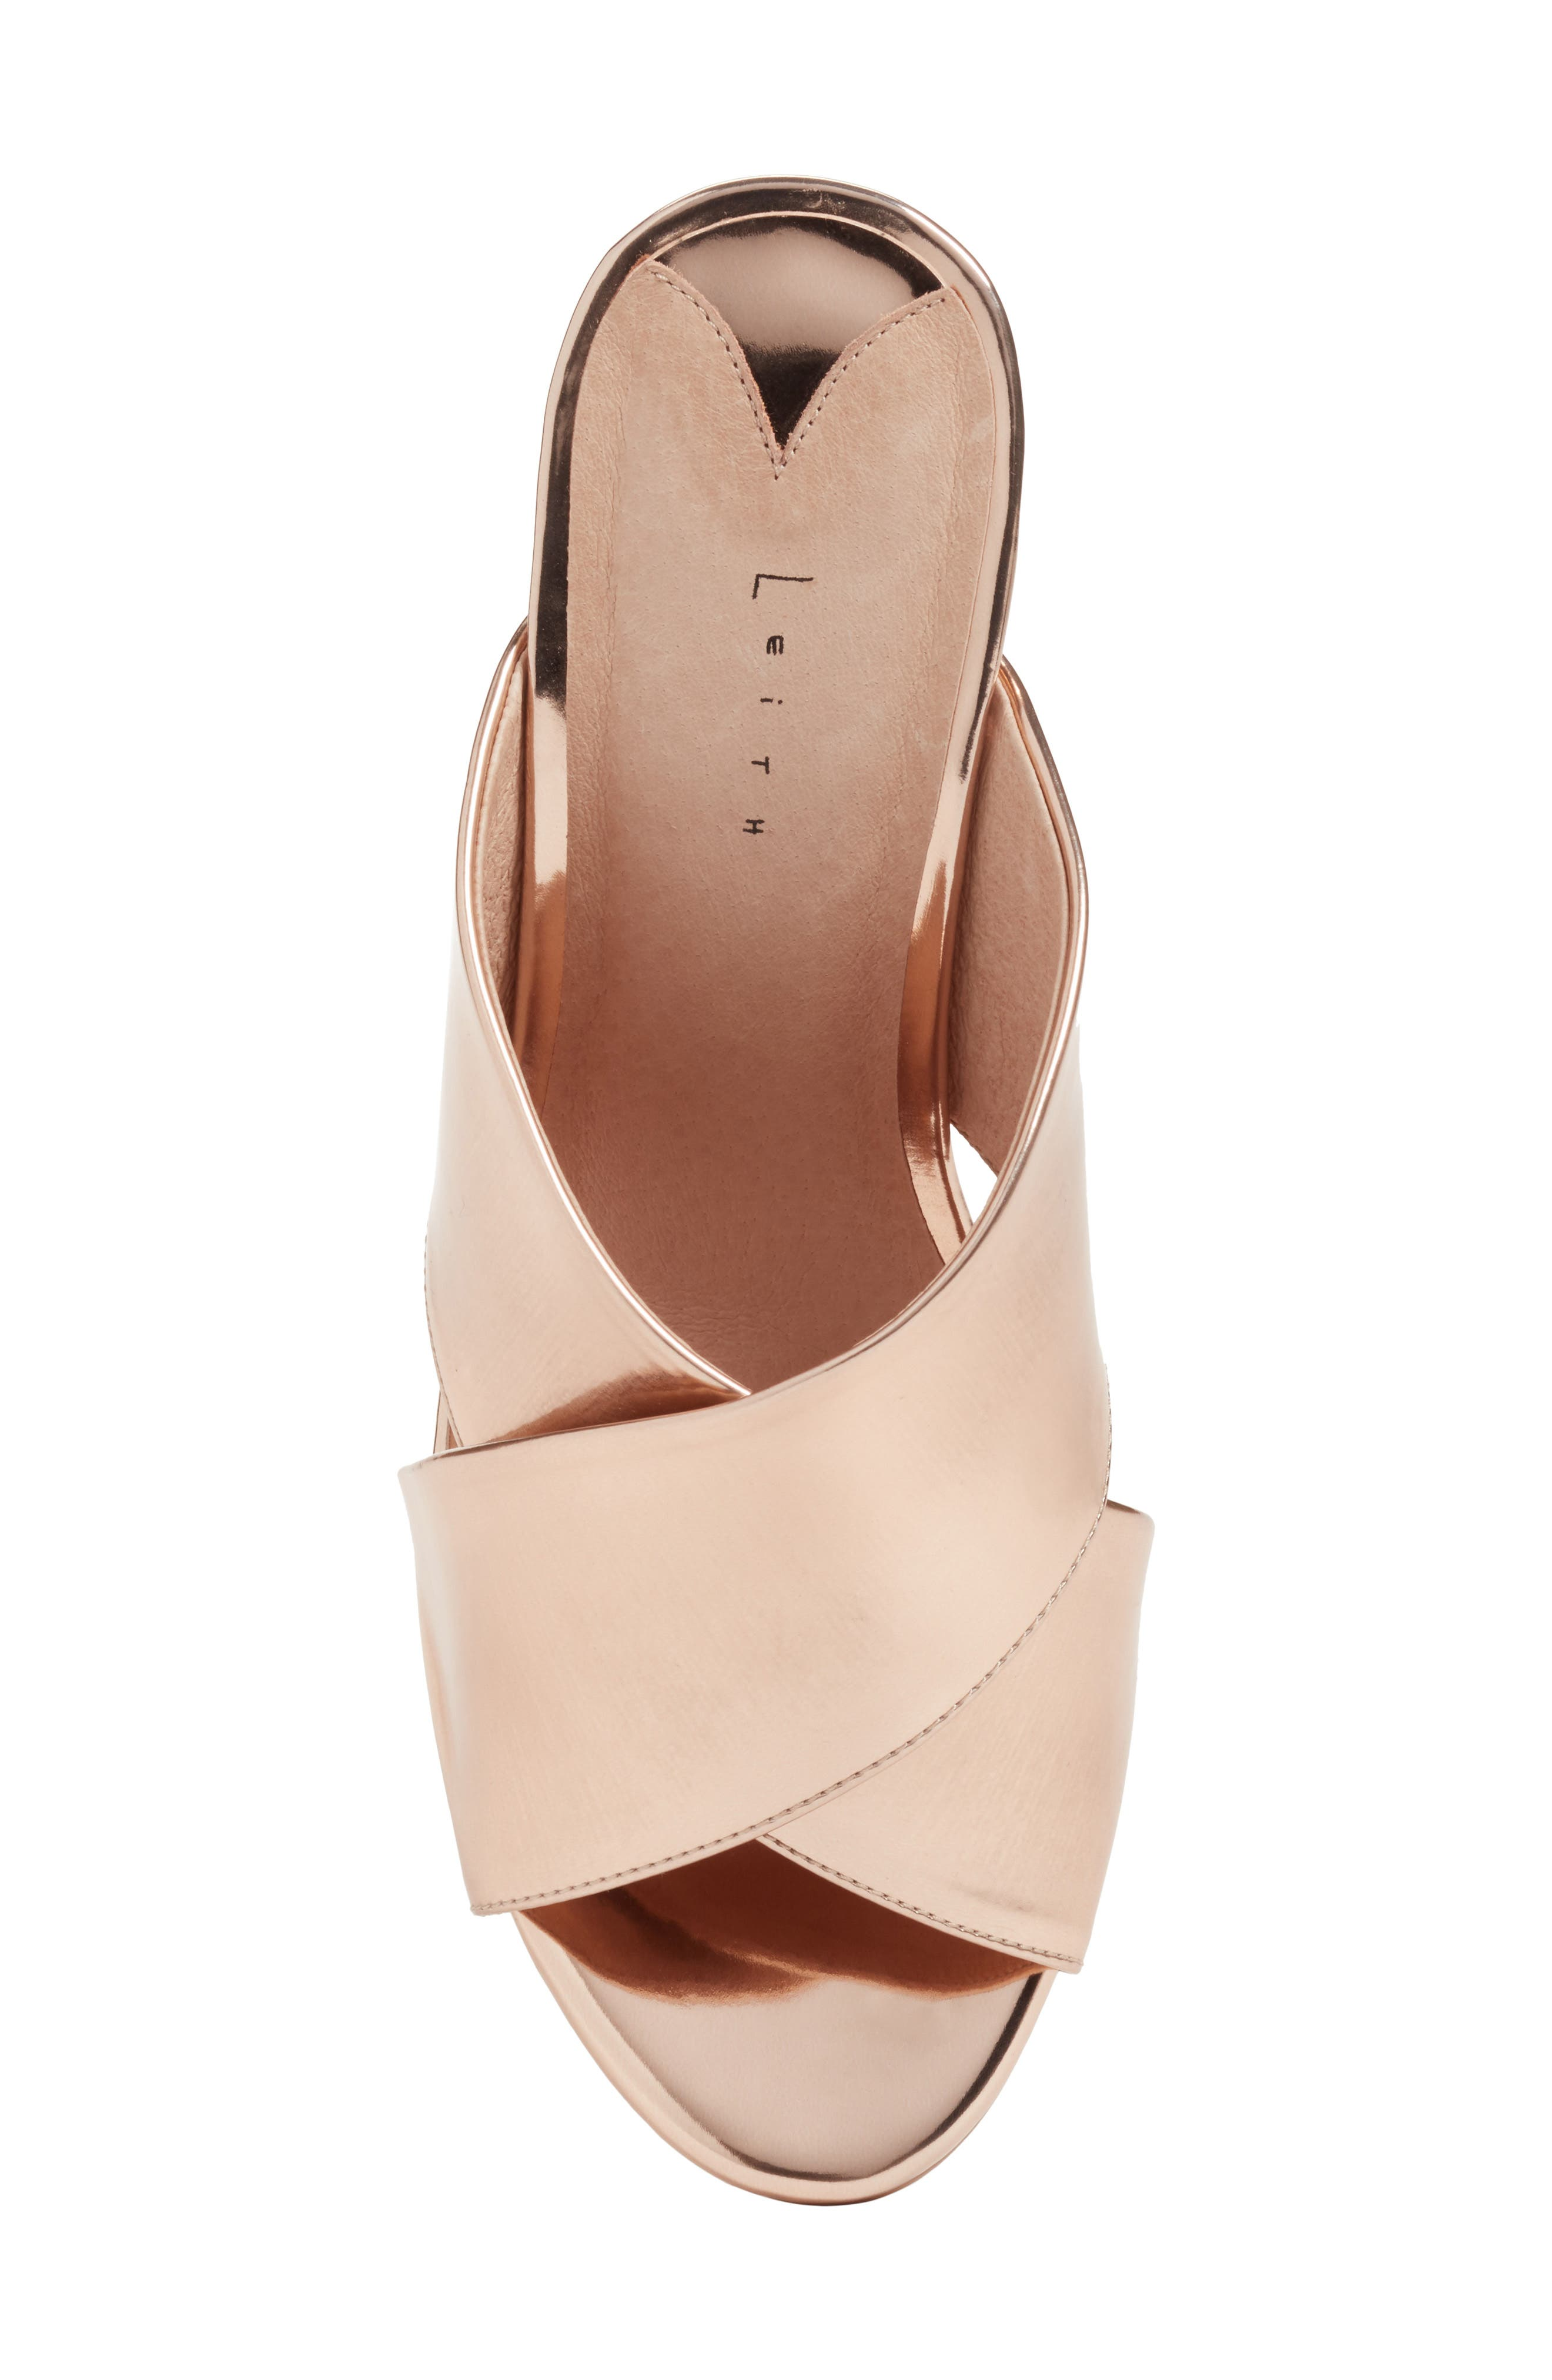 Cammie Block Heel Sandal,                             Alternate thumbnail 5, color,                             Rosegold Metallic Faux Leather